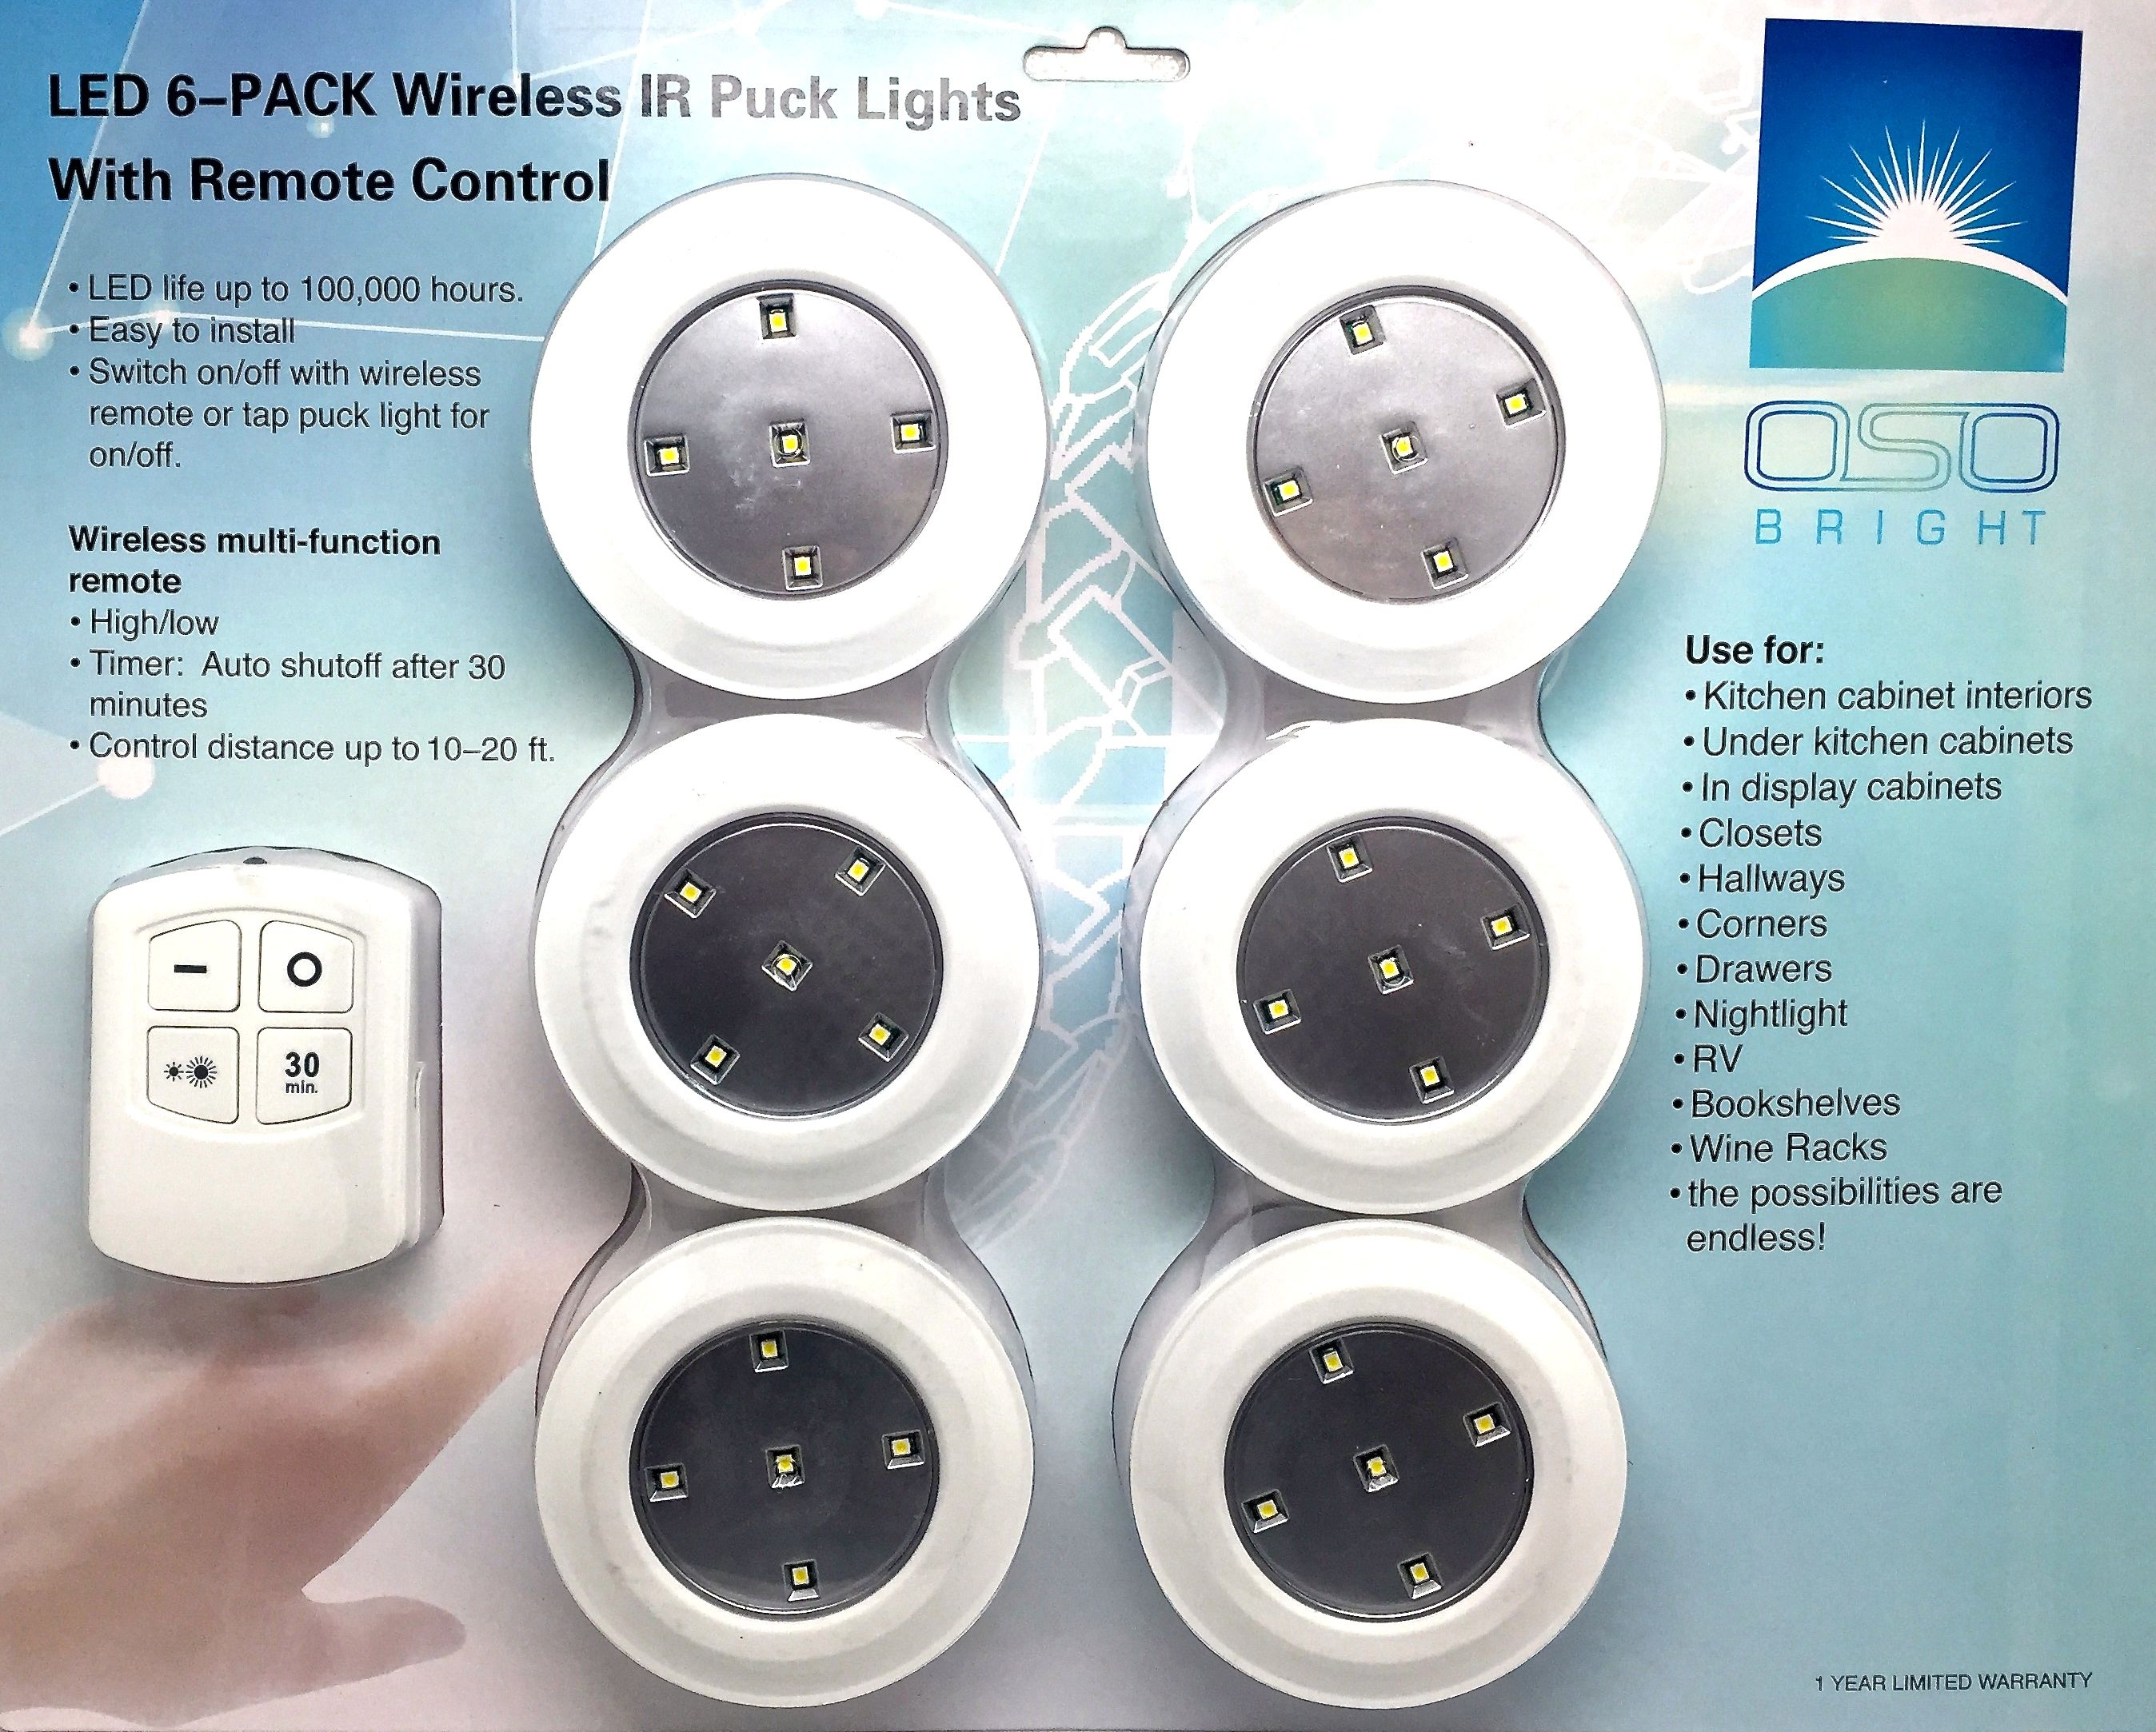 Lightmates power series 6pk wireless led puck lights with remote lightmates power series 6pk wireless led puck lights with remote aloadofball Image collections